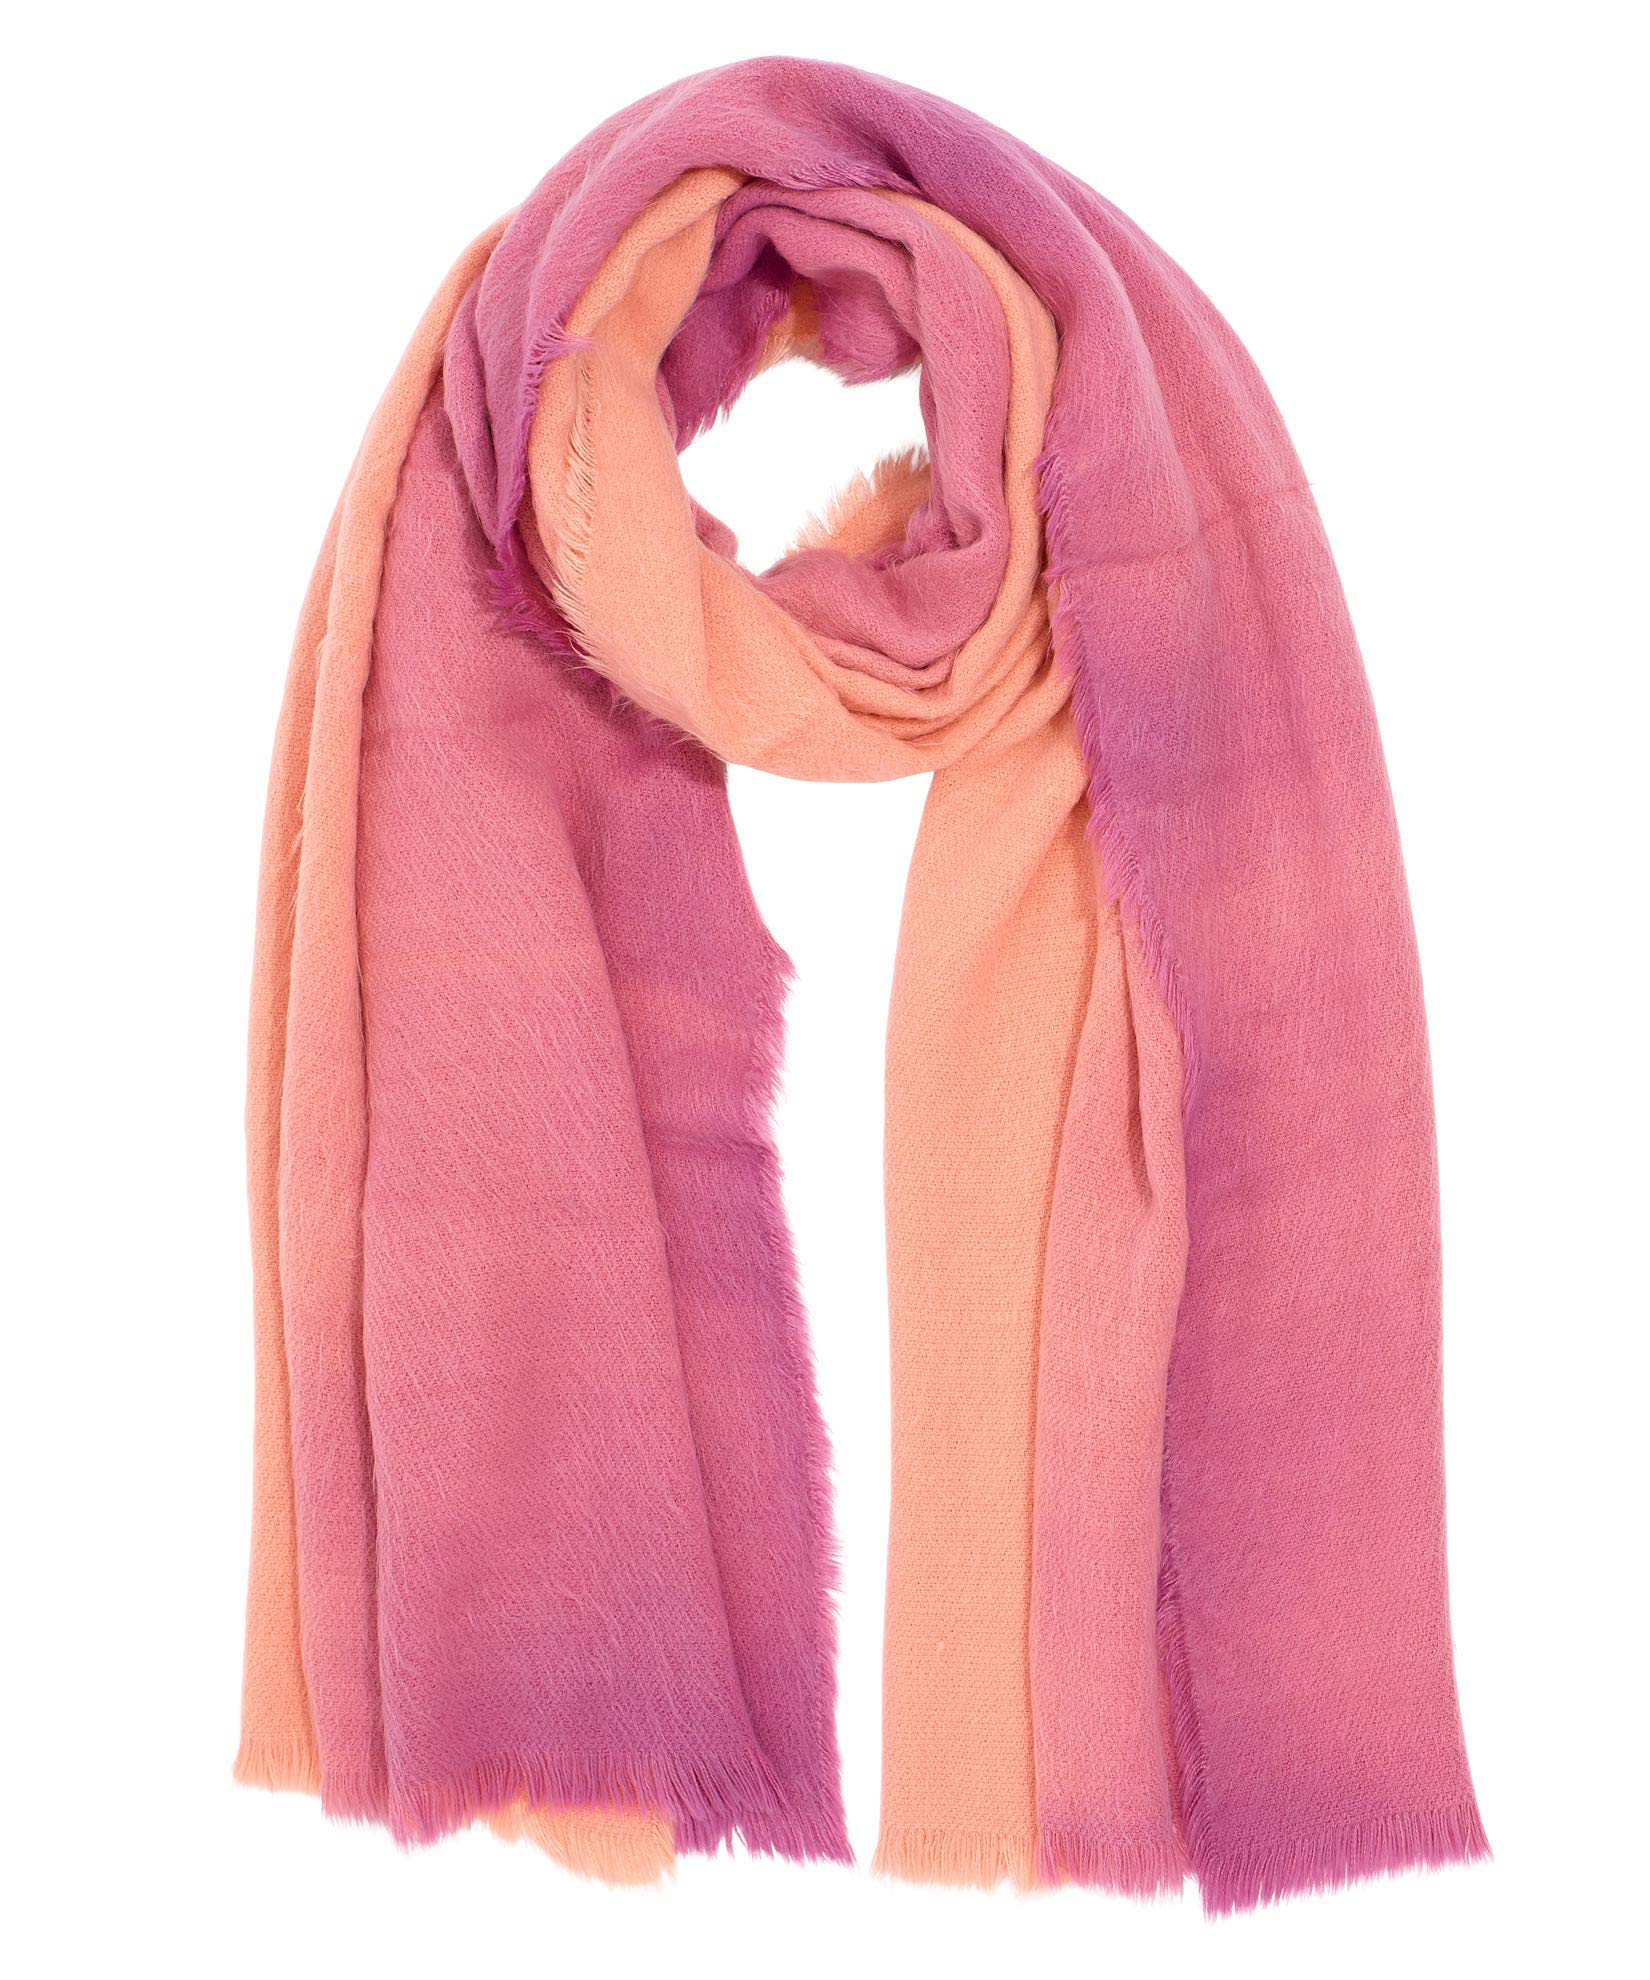 Peach Pink - Brushed Ombre Scarf